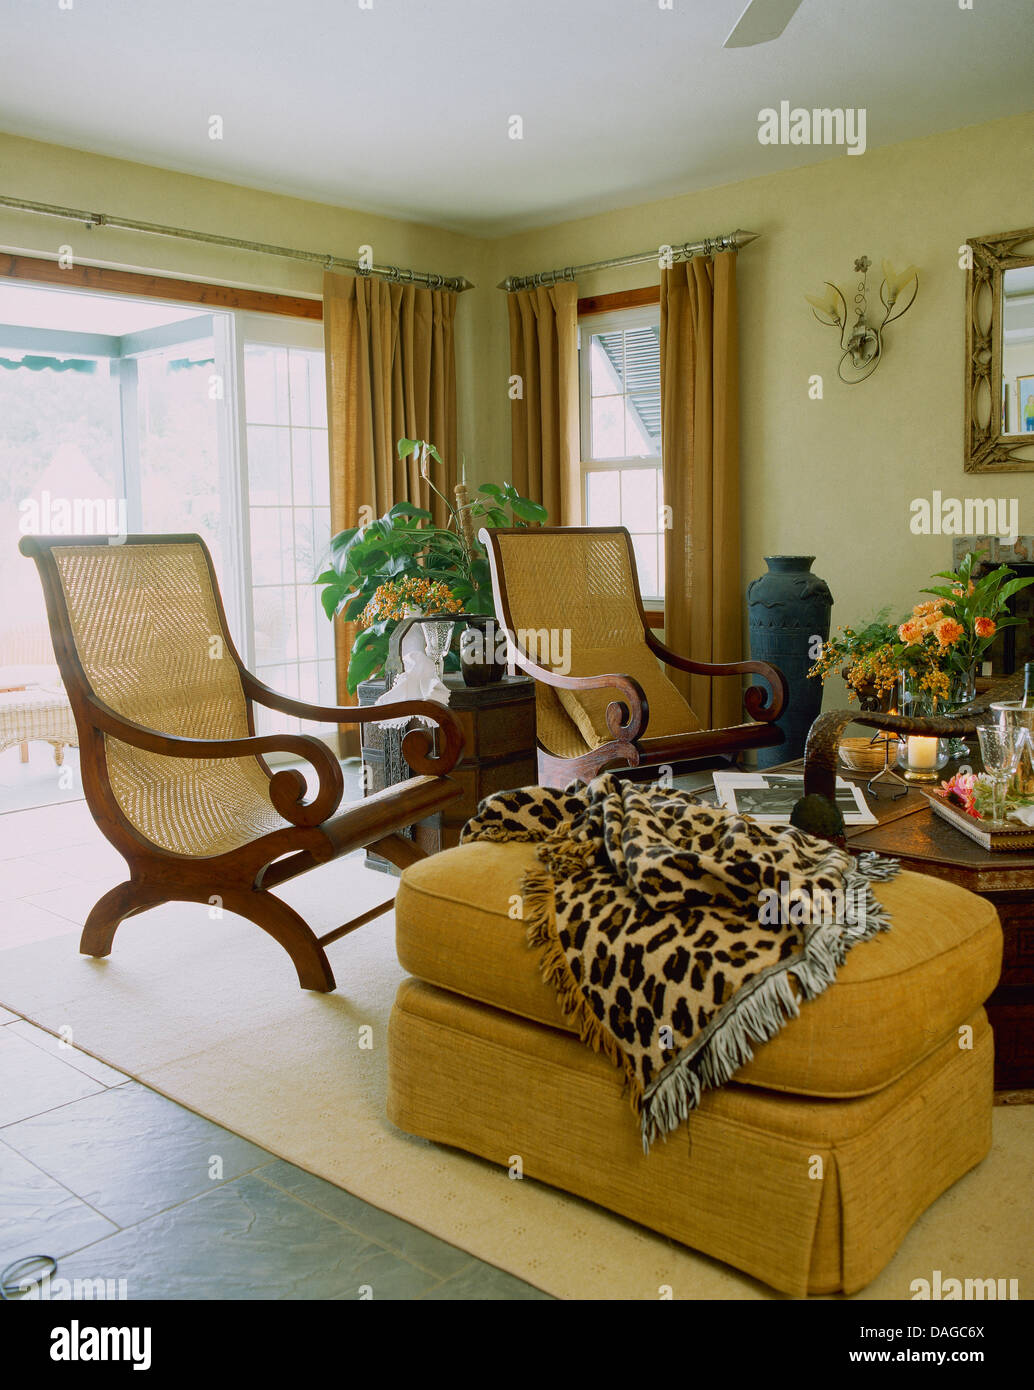 Cane Back Planteru0027s Chairs And Yellow Ottoman Stool With Leopard Print  Throw In Country Living Room